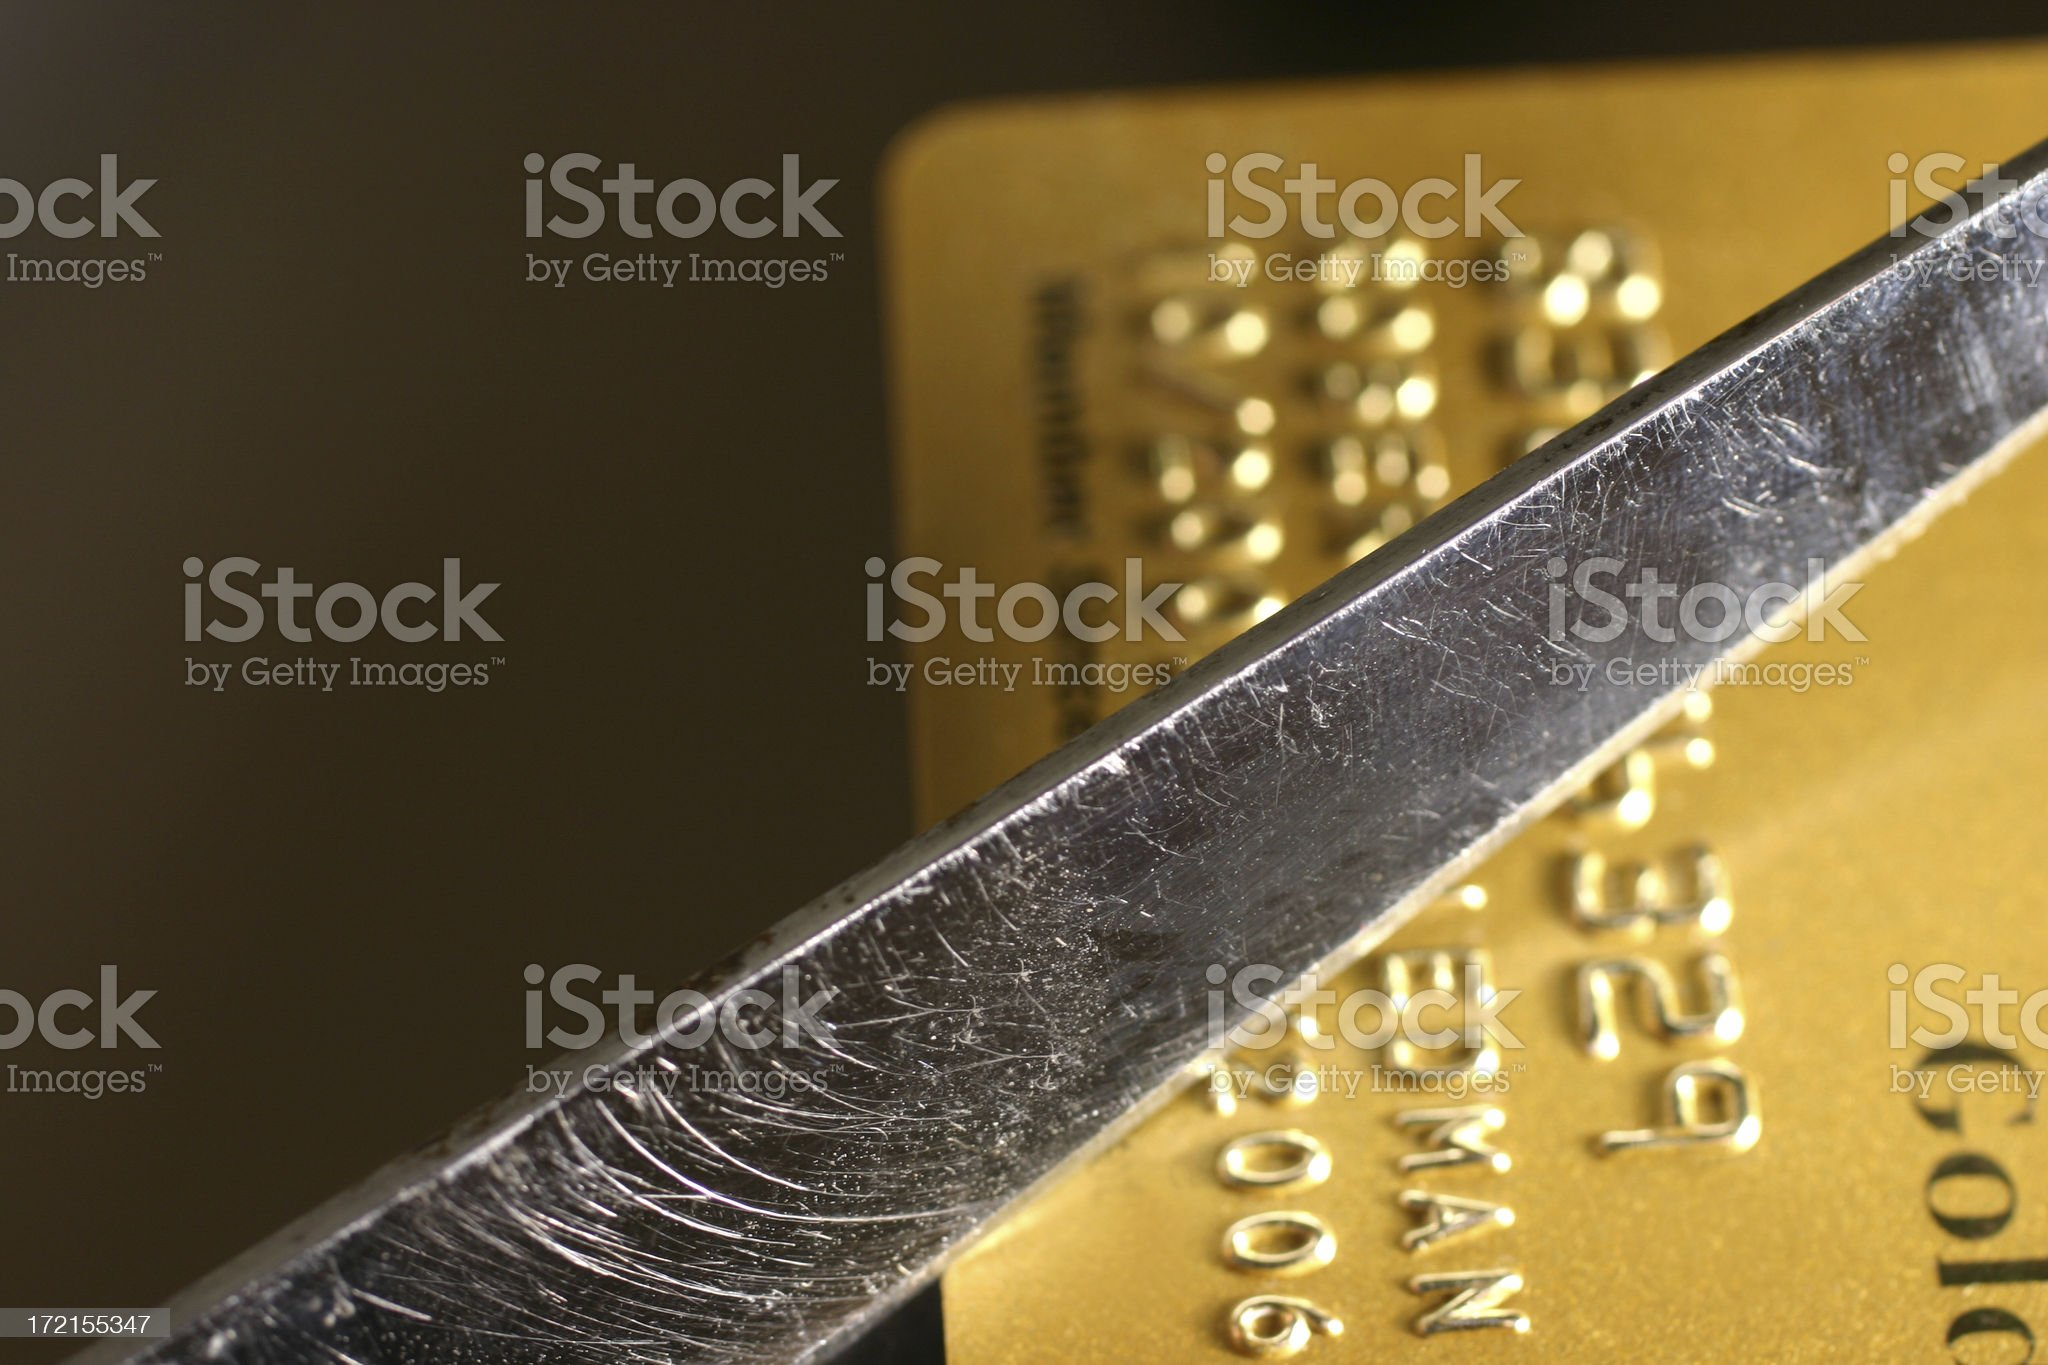 Cutting up Credit Cards royalty-free stock photo